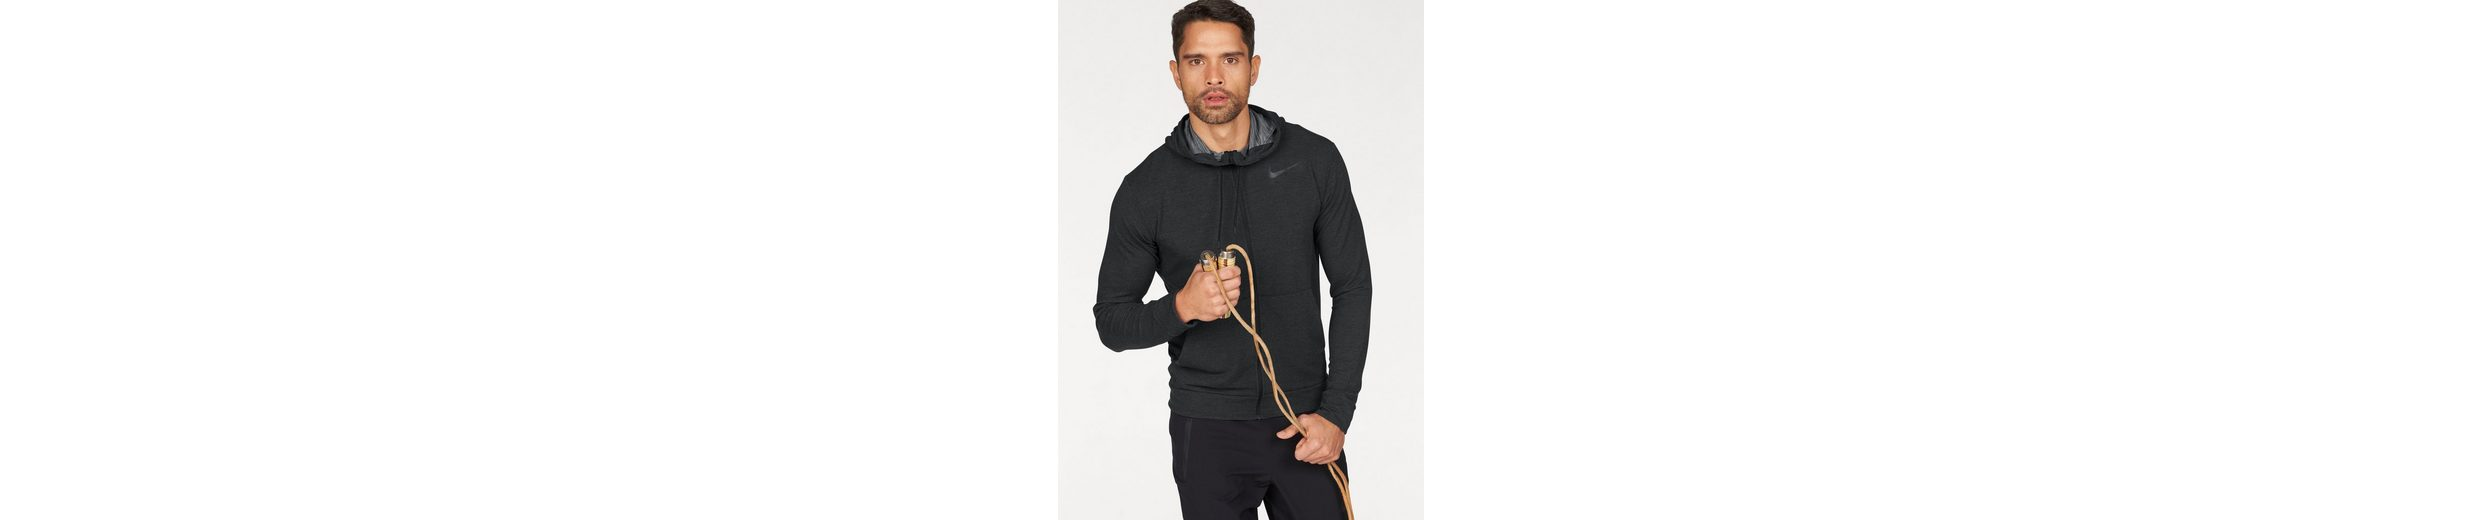 Nike Kapuzensweatjacke DRY-FIT FLEECE FZ HDYDRY-FIT FLEECE FZ HDY